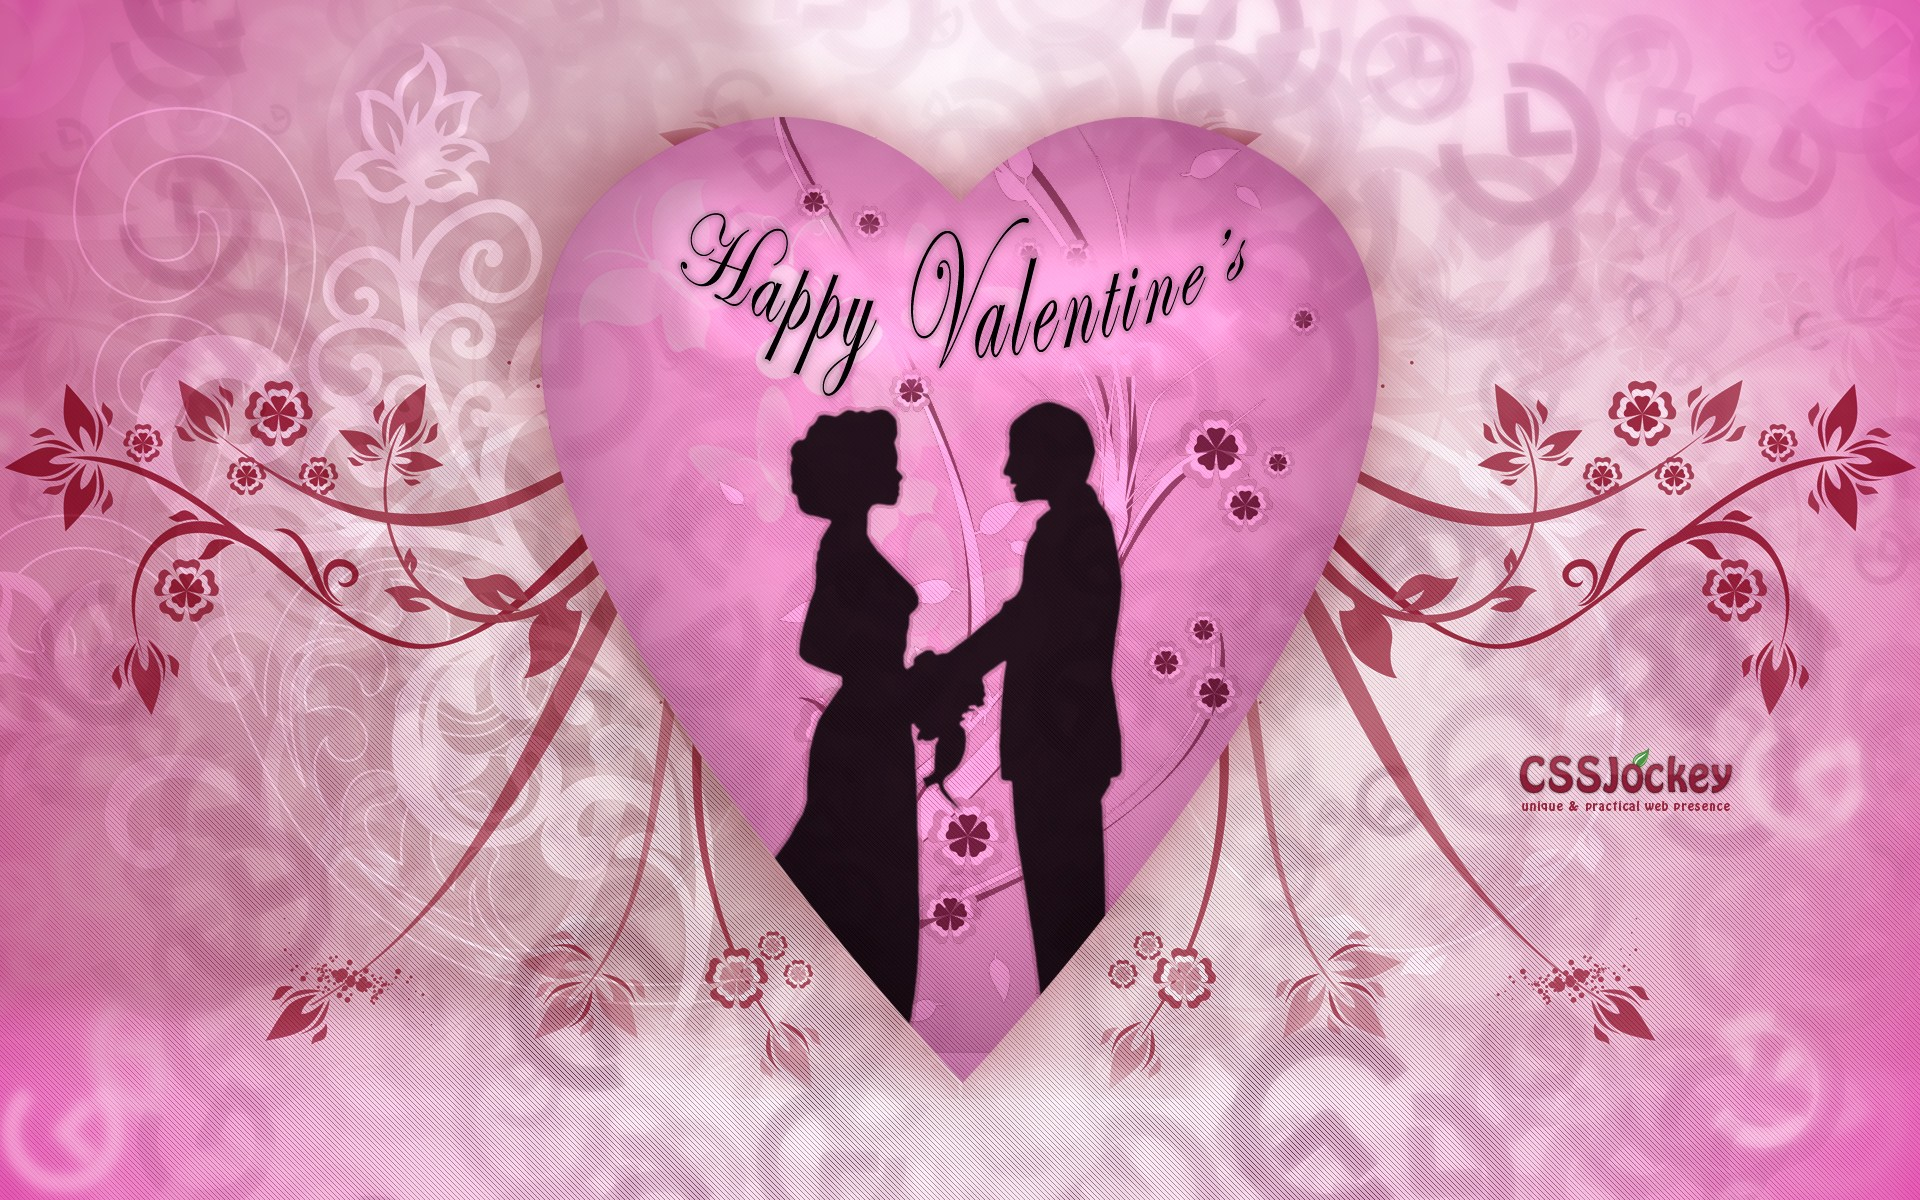 Happy Valentines Day Wallpaper - Happy Valentine Day Hd , HD Wallpaper & Backgrounds